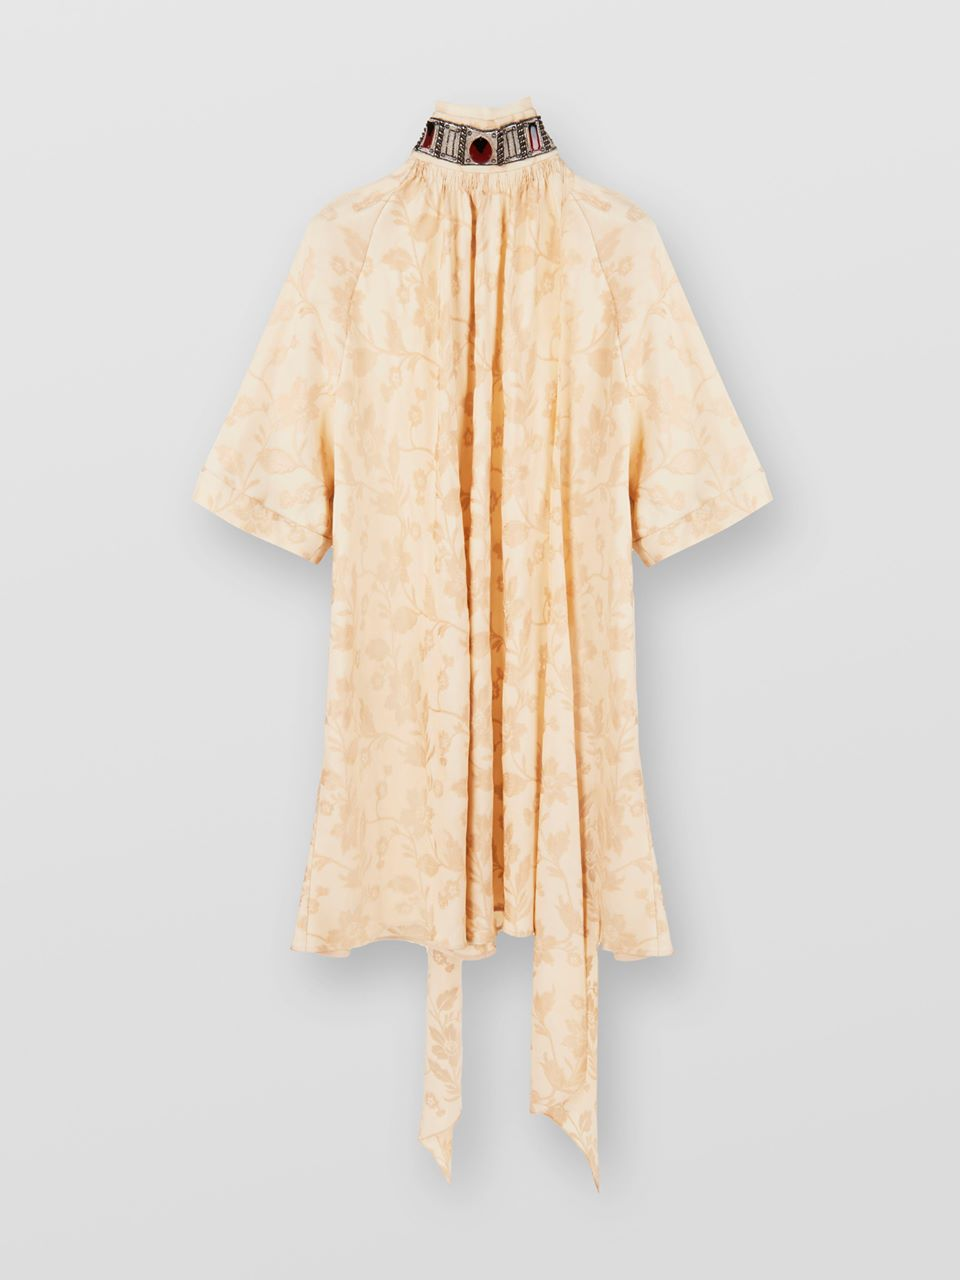 CHLOÉ Lavallière dress Women's LIGHT CAMEL 100% Viscose